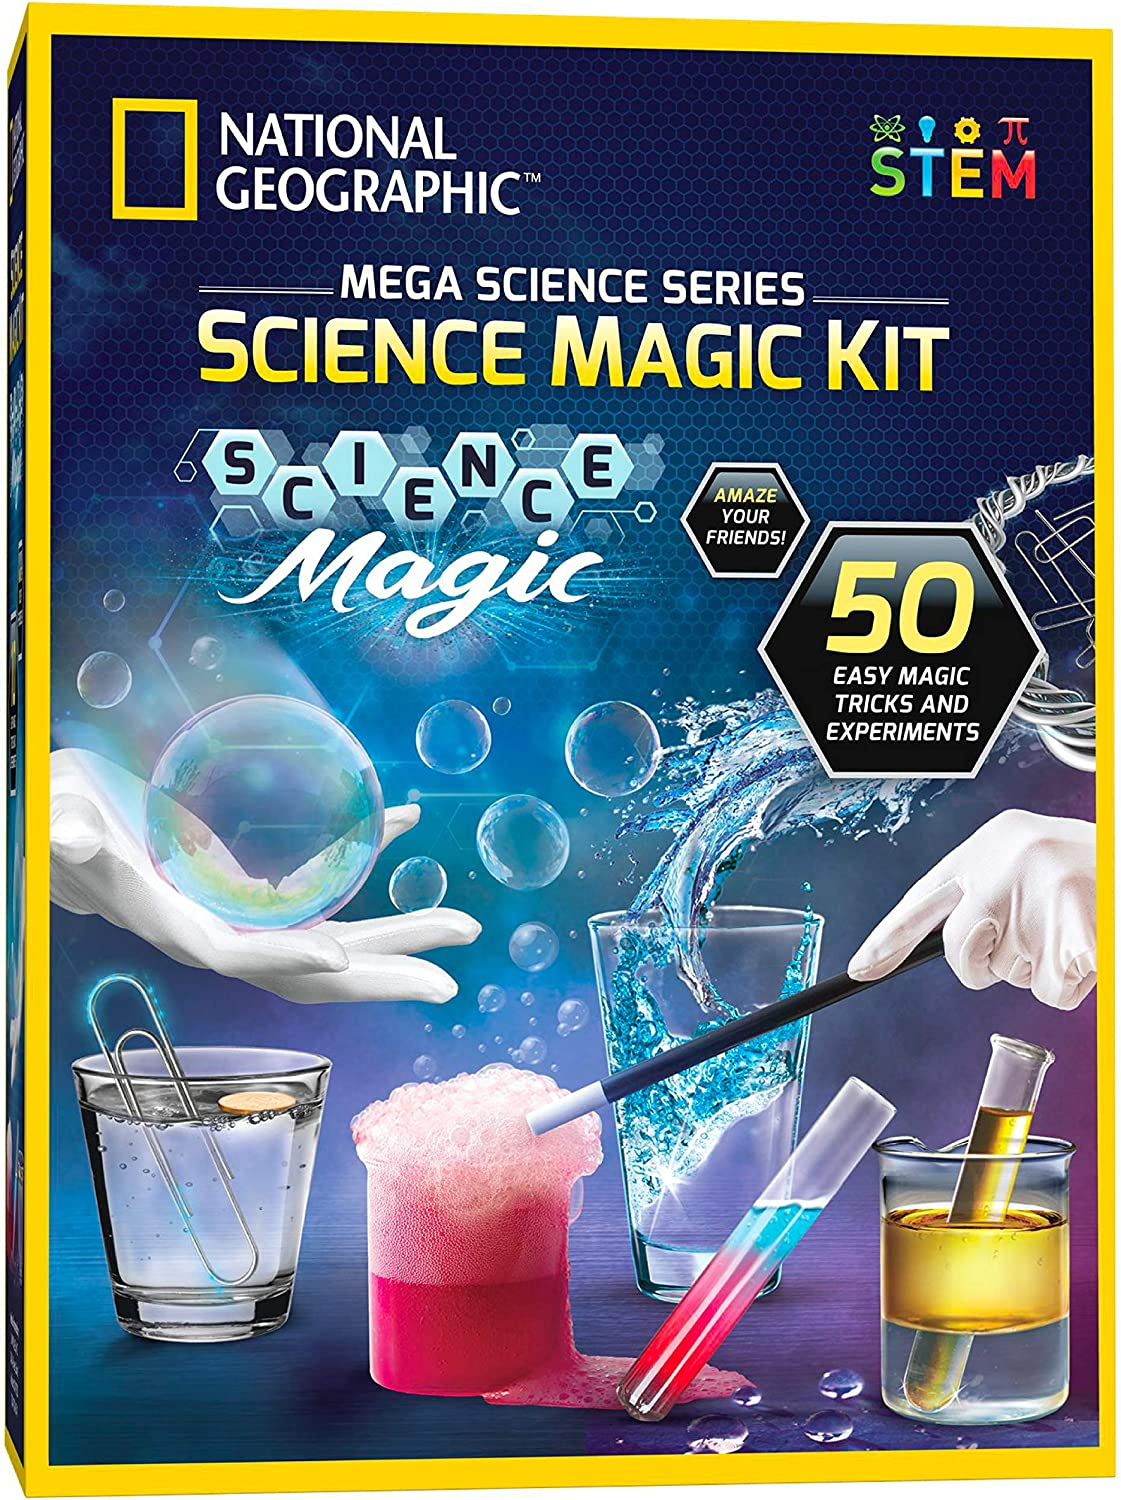 Includes Magic Wand and Over 50 Pieces NATIONAL GEOGRAPHIC Science Magic Kit Perform 20 Unique Science Experiments as Magic Tricks Great STEM Learning Science Kit for Boys and Girls